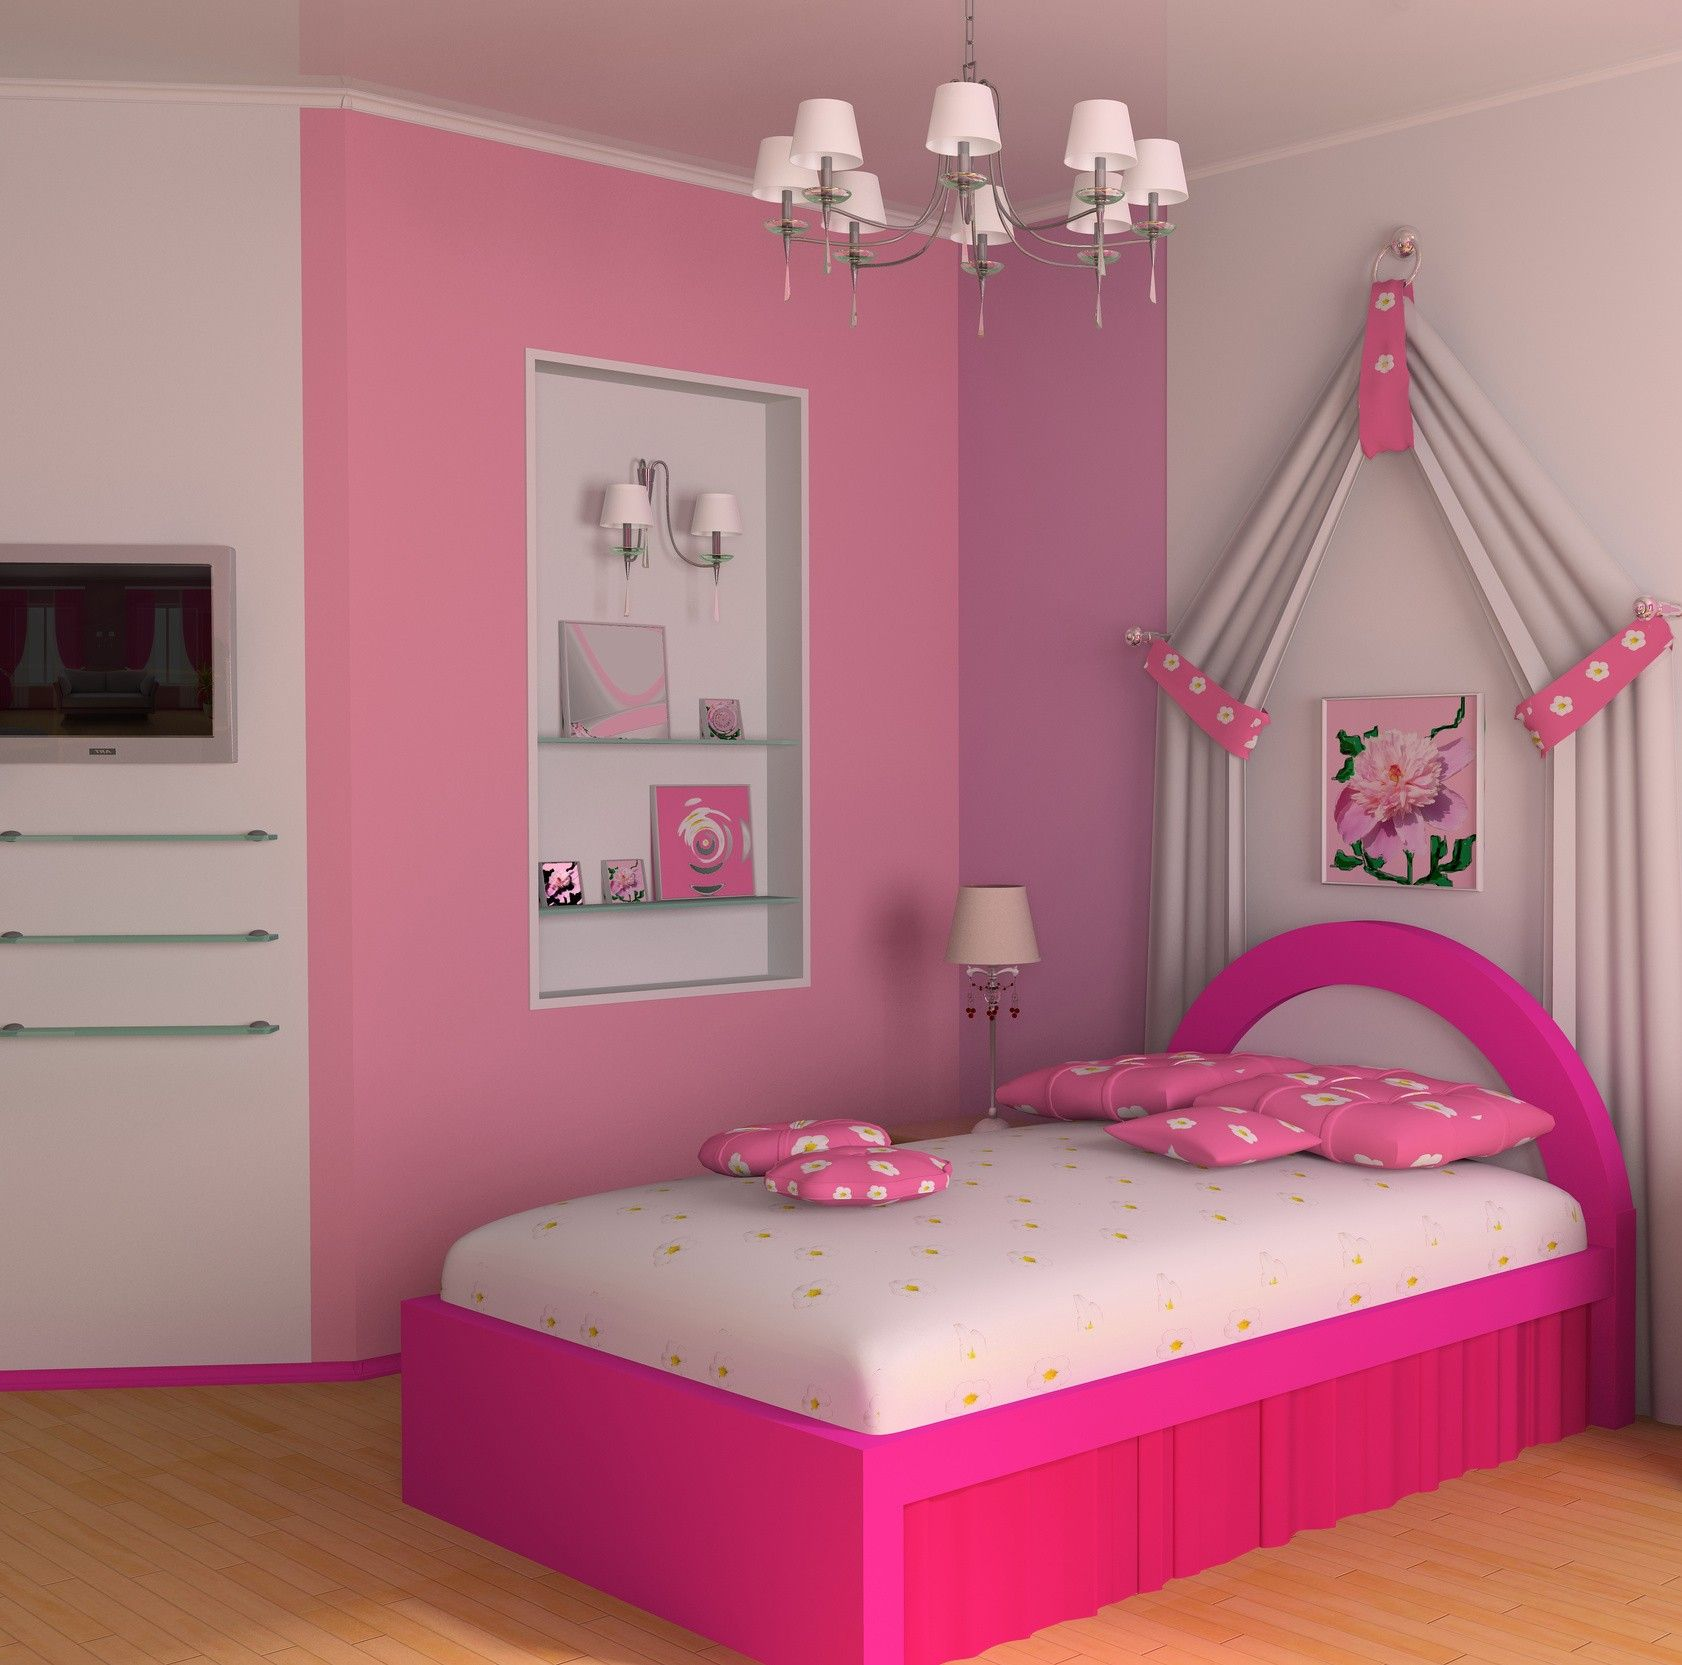 Bedroom ideas for teenage girls light pink - Girls Bedroom Heavenly Pink Bed Design On Teenage Girl Bedroom Ideas Comes With Entrancing Pink Wall Accent Paint Decor Ideas Plus Agreeable Chandelier Idea